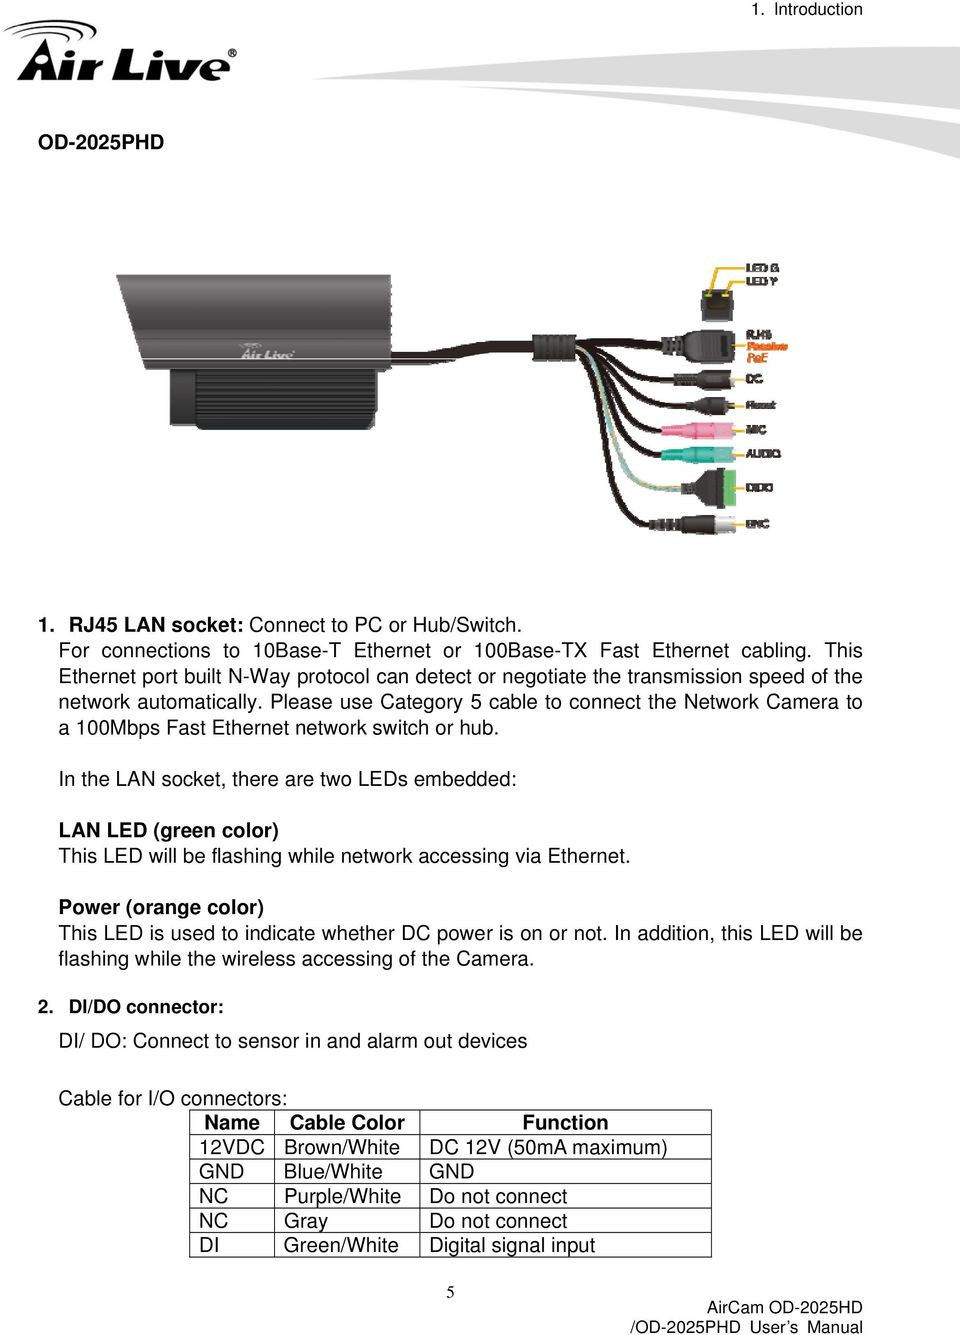 Please use Category 5 cable to connect the Network Camera to a 100Mbps Fast Ethernet network switch or hub.